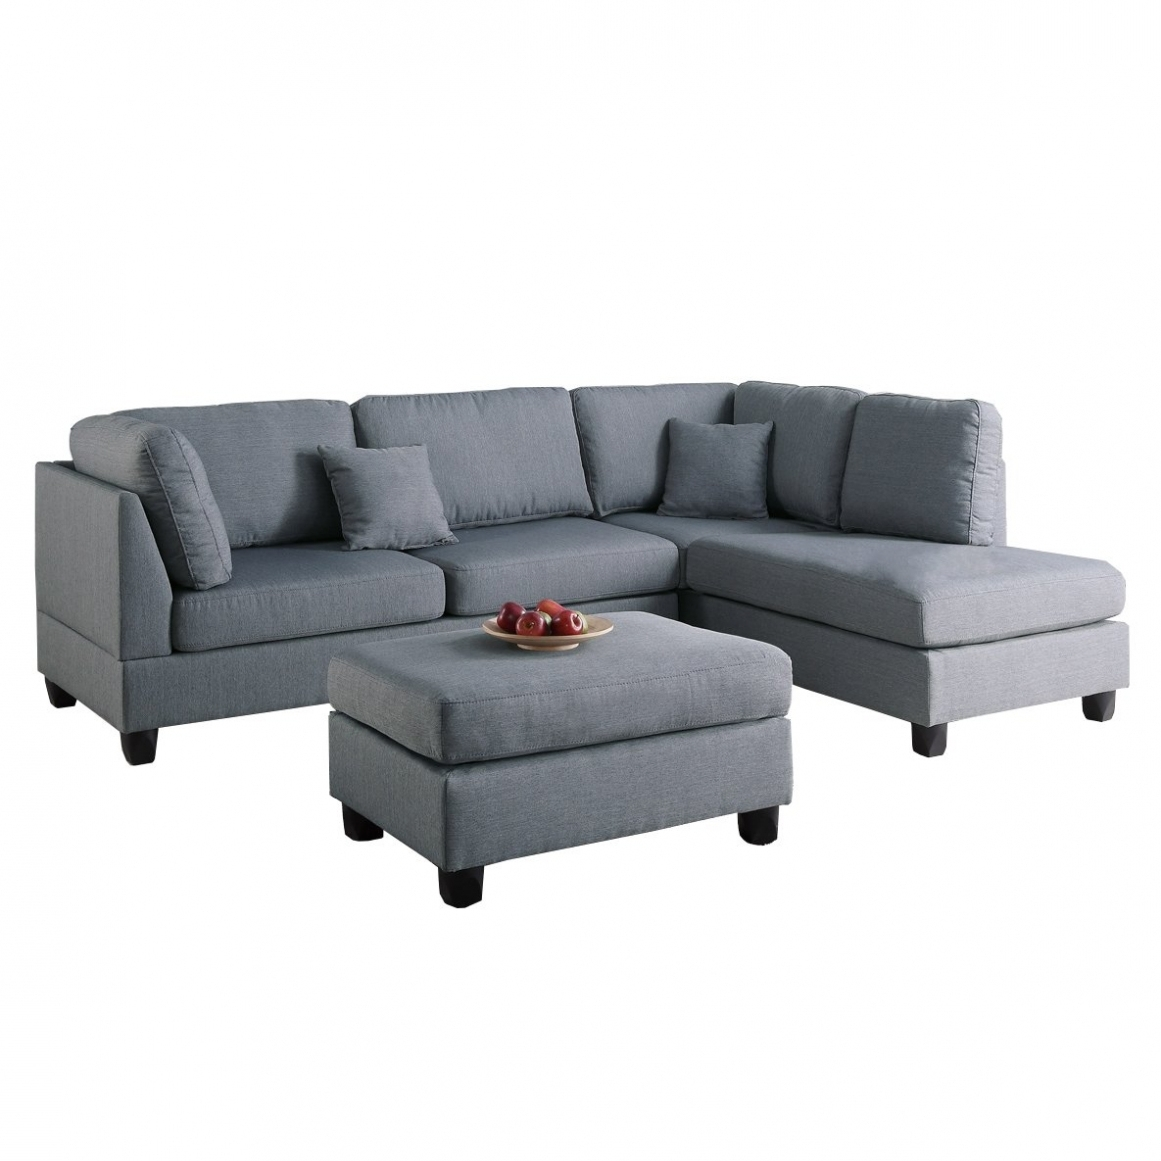 Furniture: Furniture: Changeable Sofa | Walmart Sectional Sofa With Regard To Sectional Sofas At Walmart (View 5 of 10)